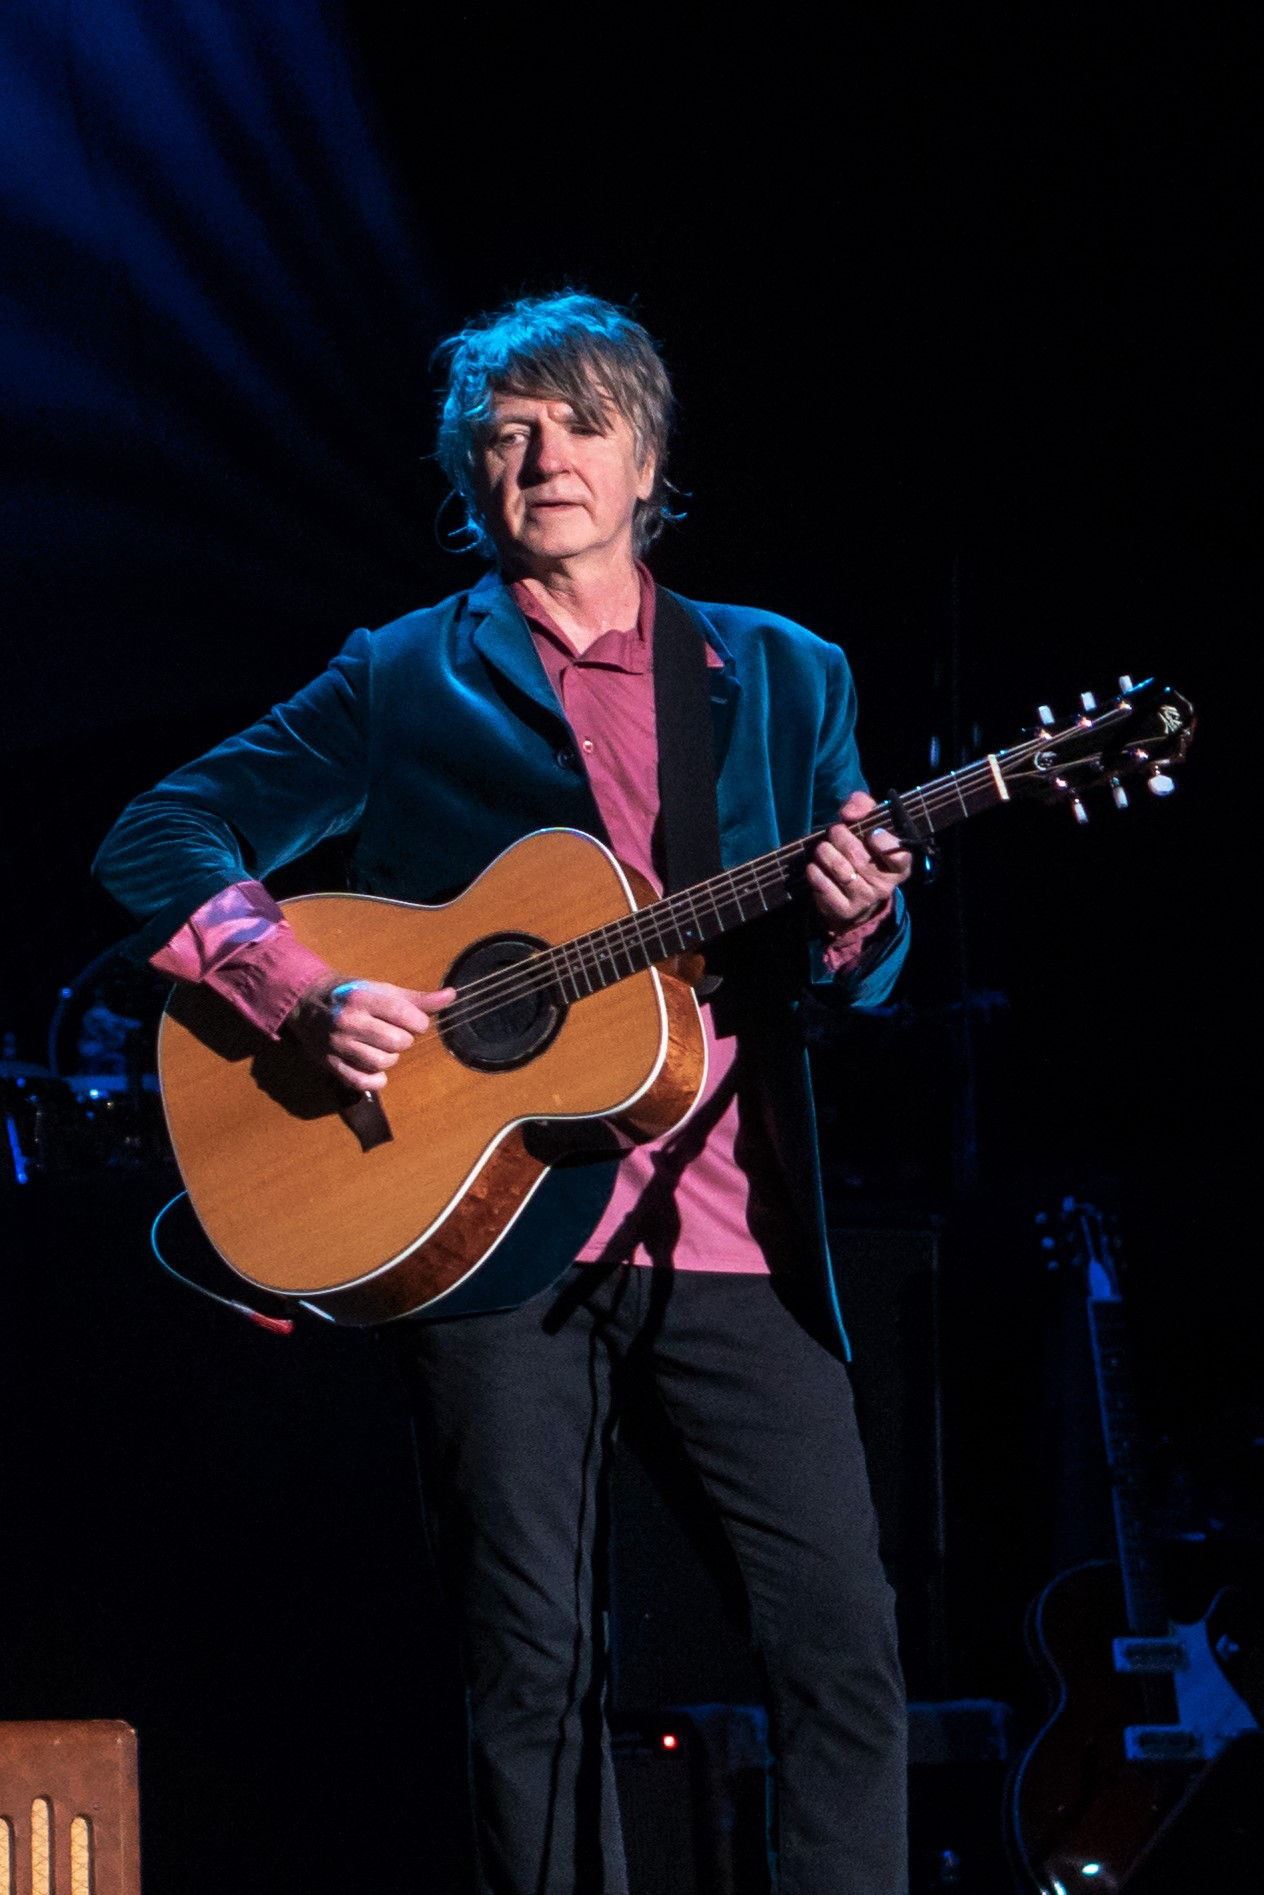 Neil Finn performing with [[Fleetwood Mac]] in October 2018